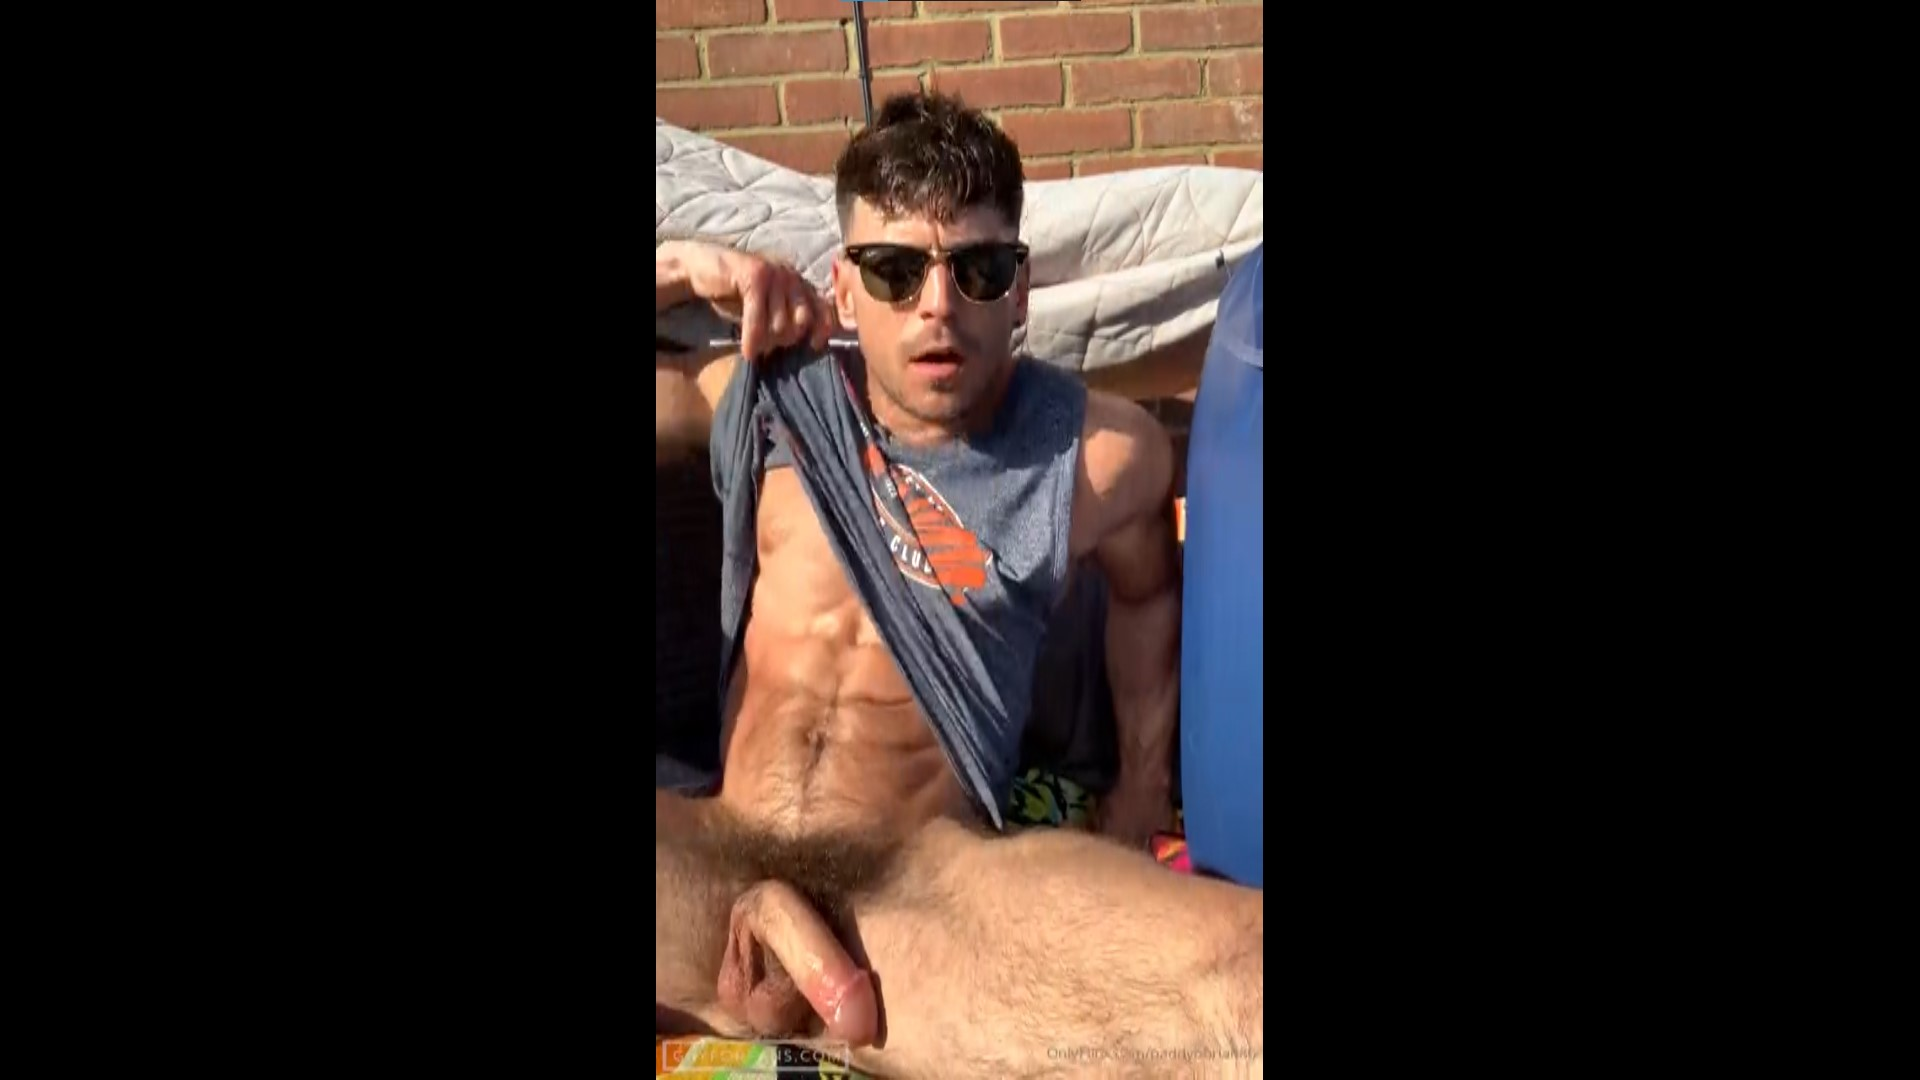 Jerking off outside and playing with my ass - Paddy O'Brian